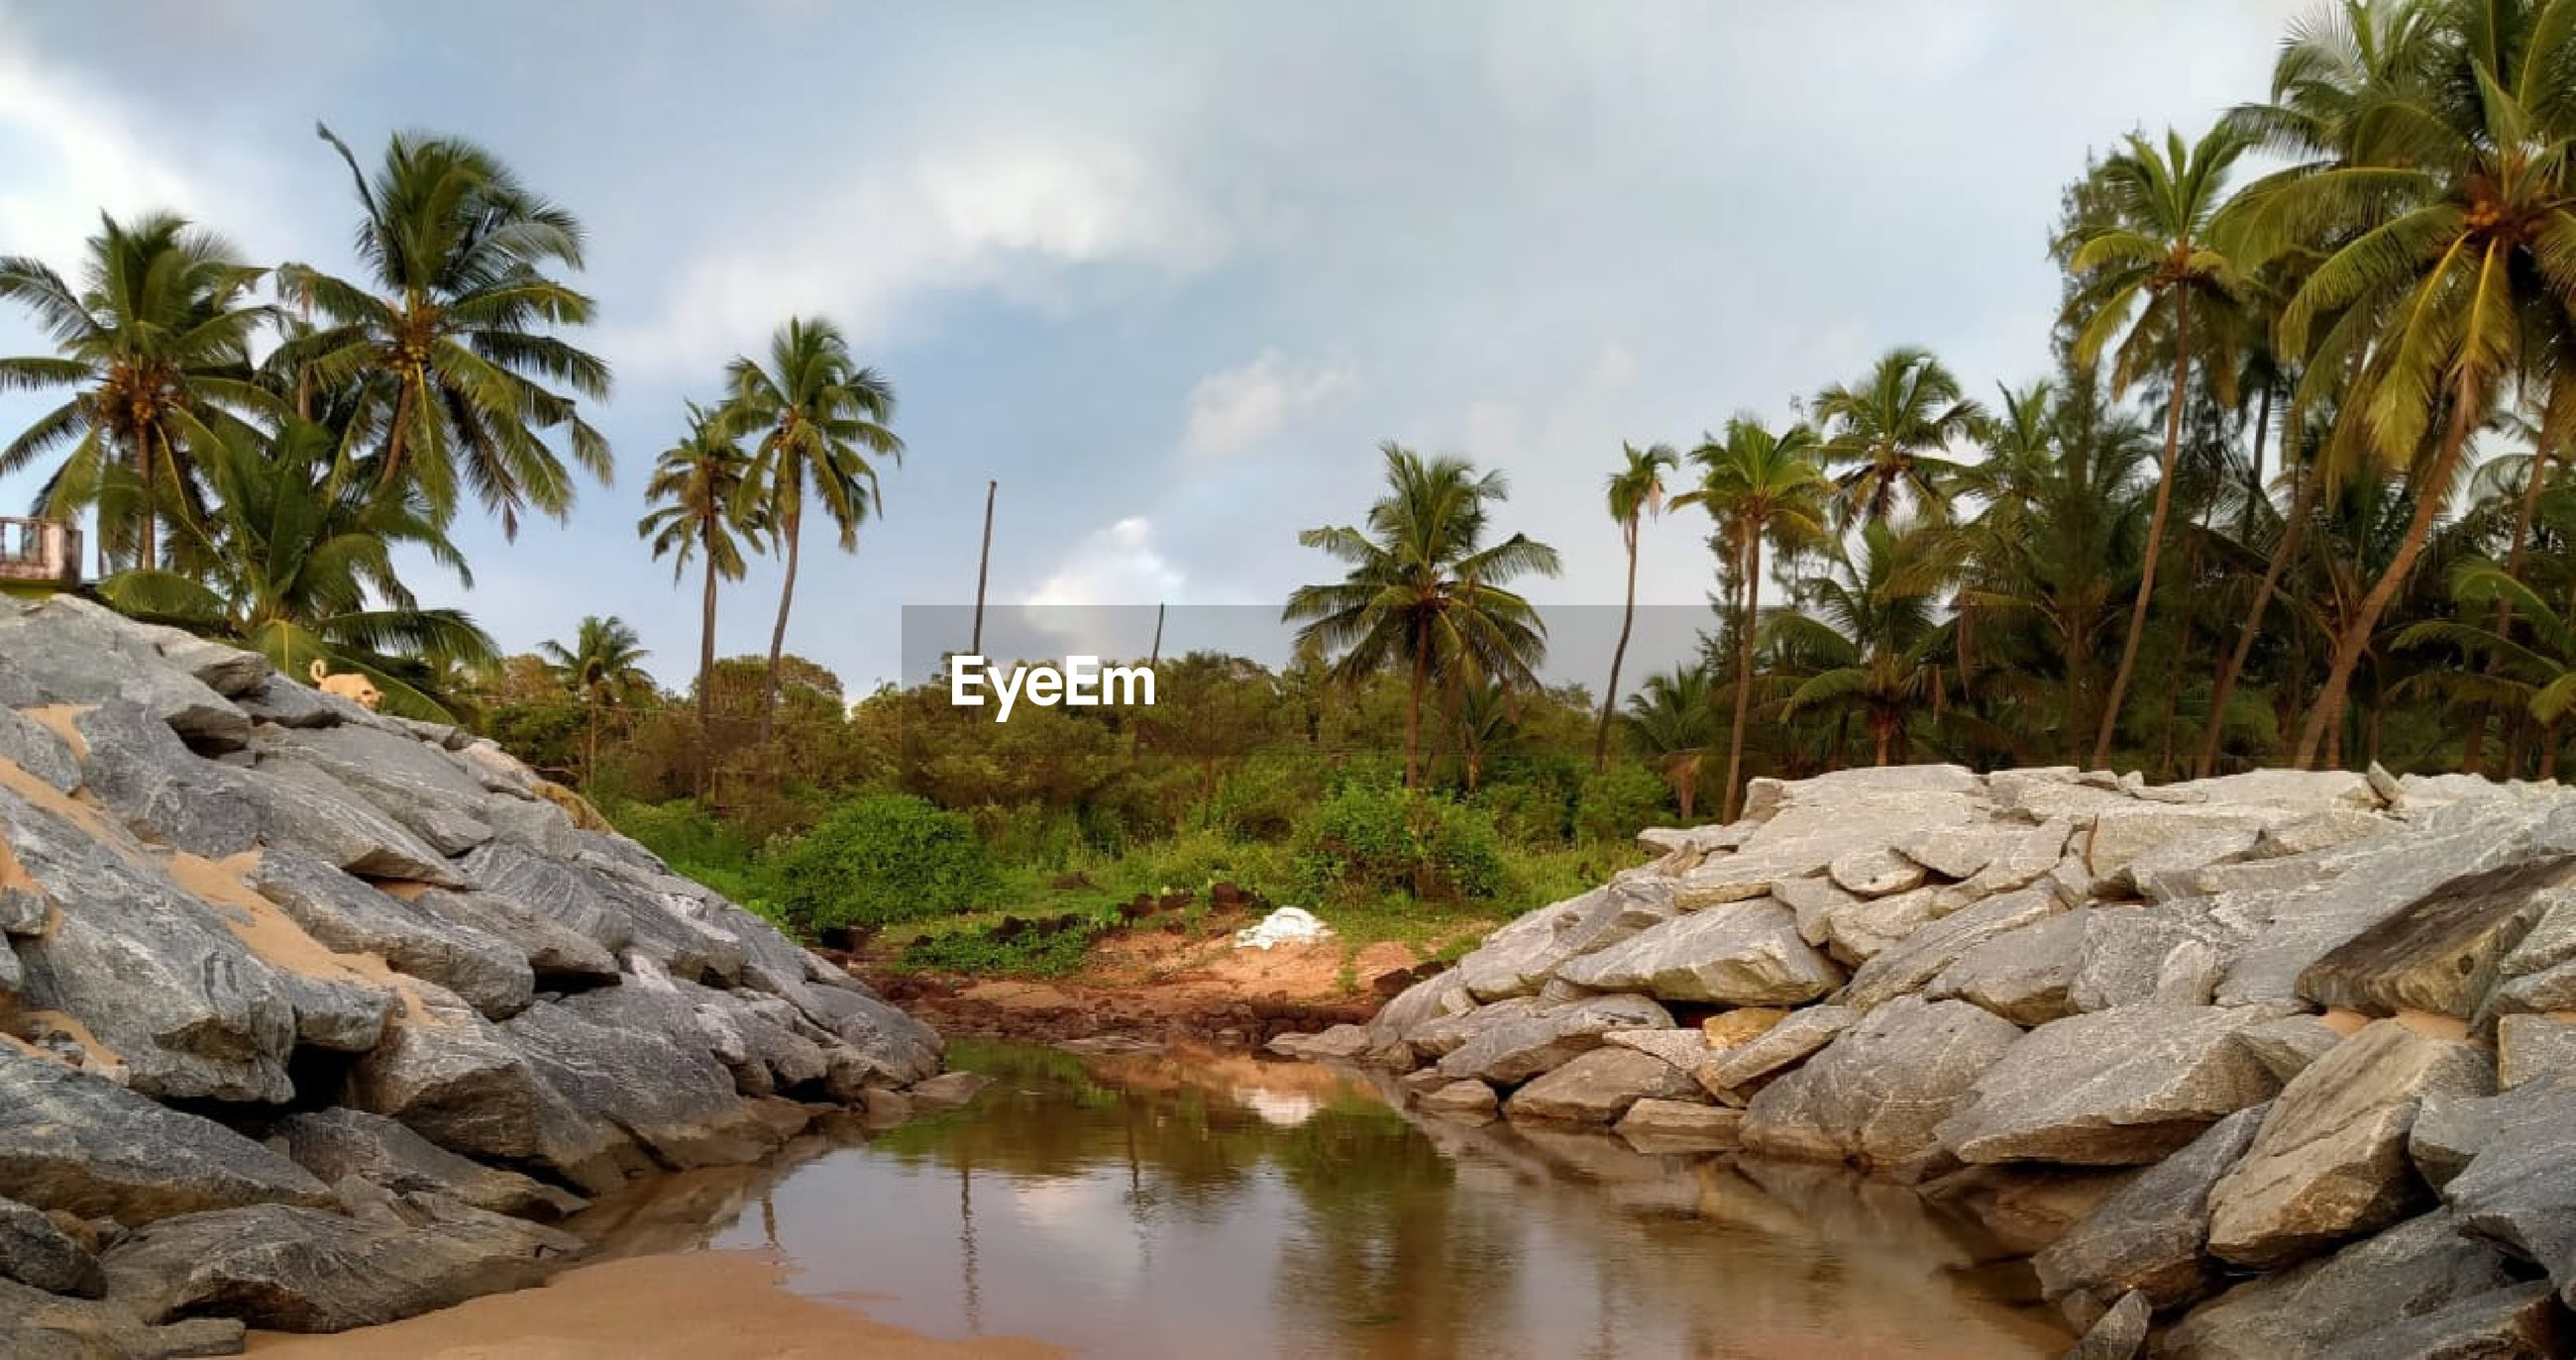 Panoramic view of palm trees and rocks against sky